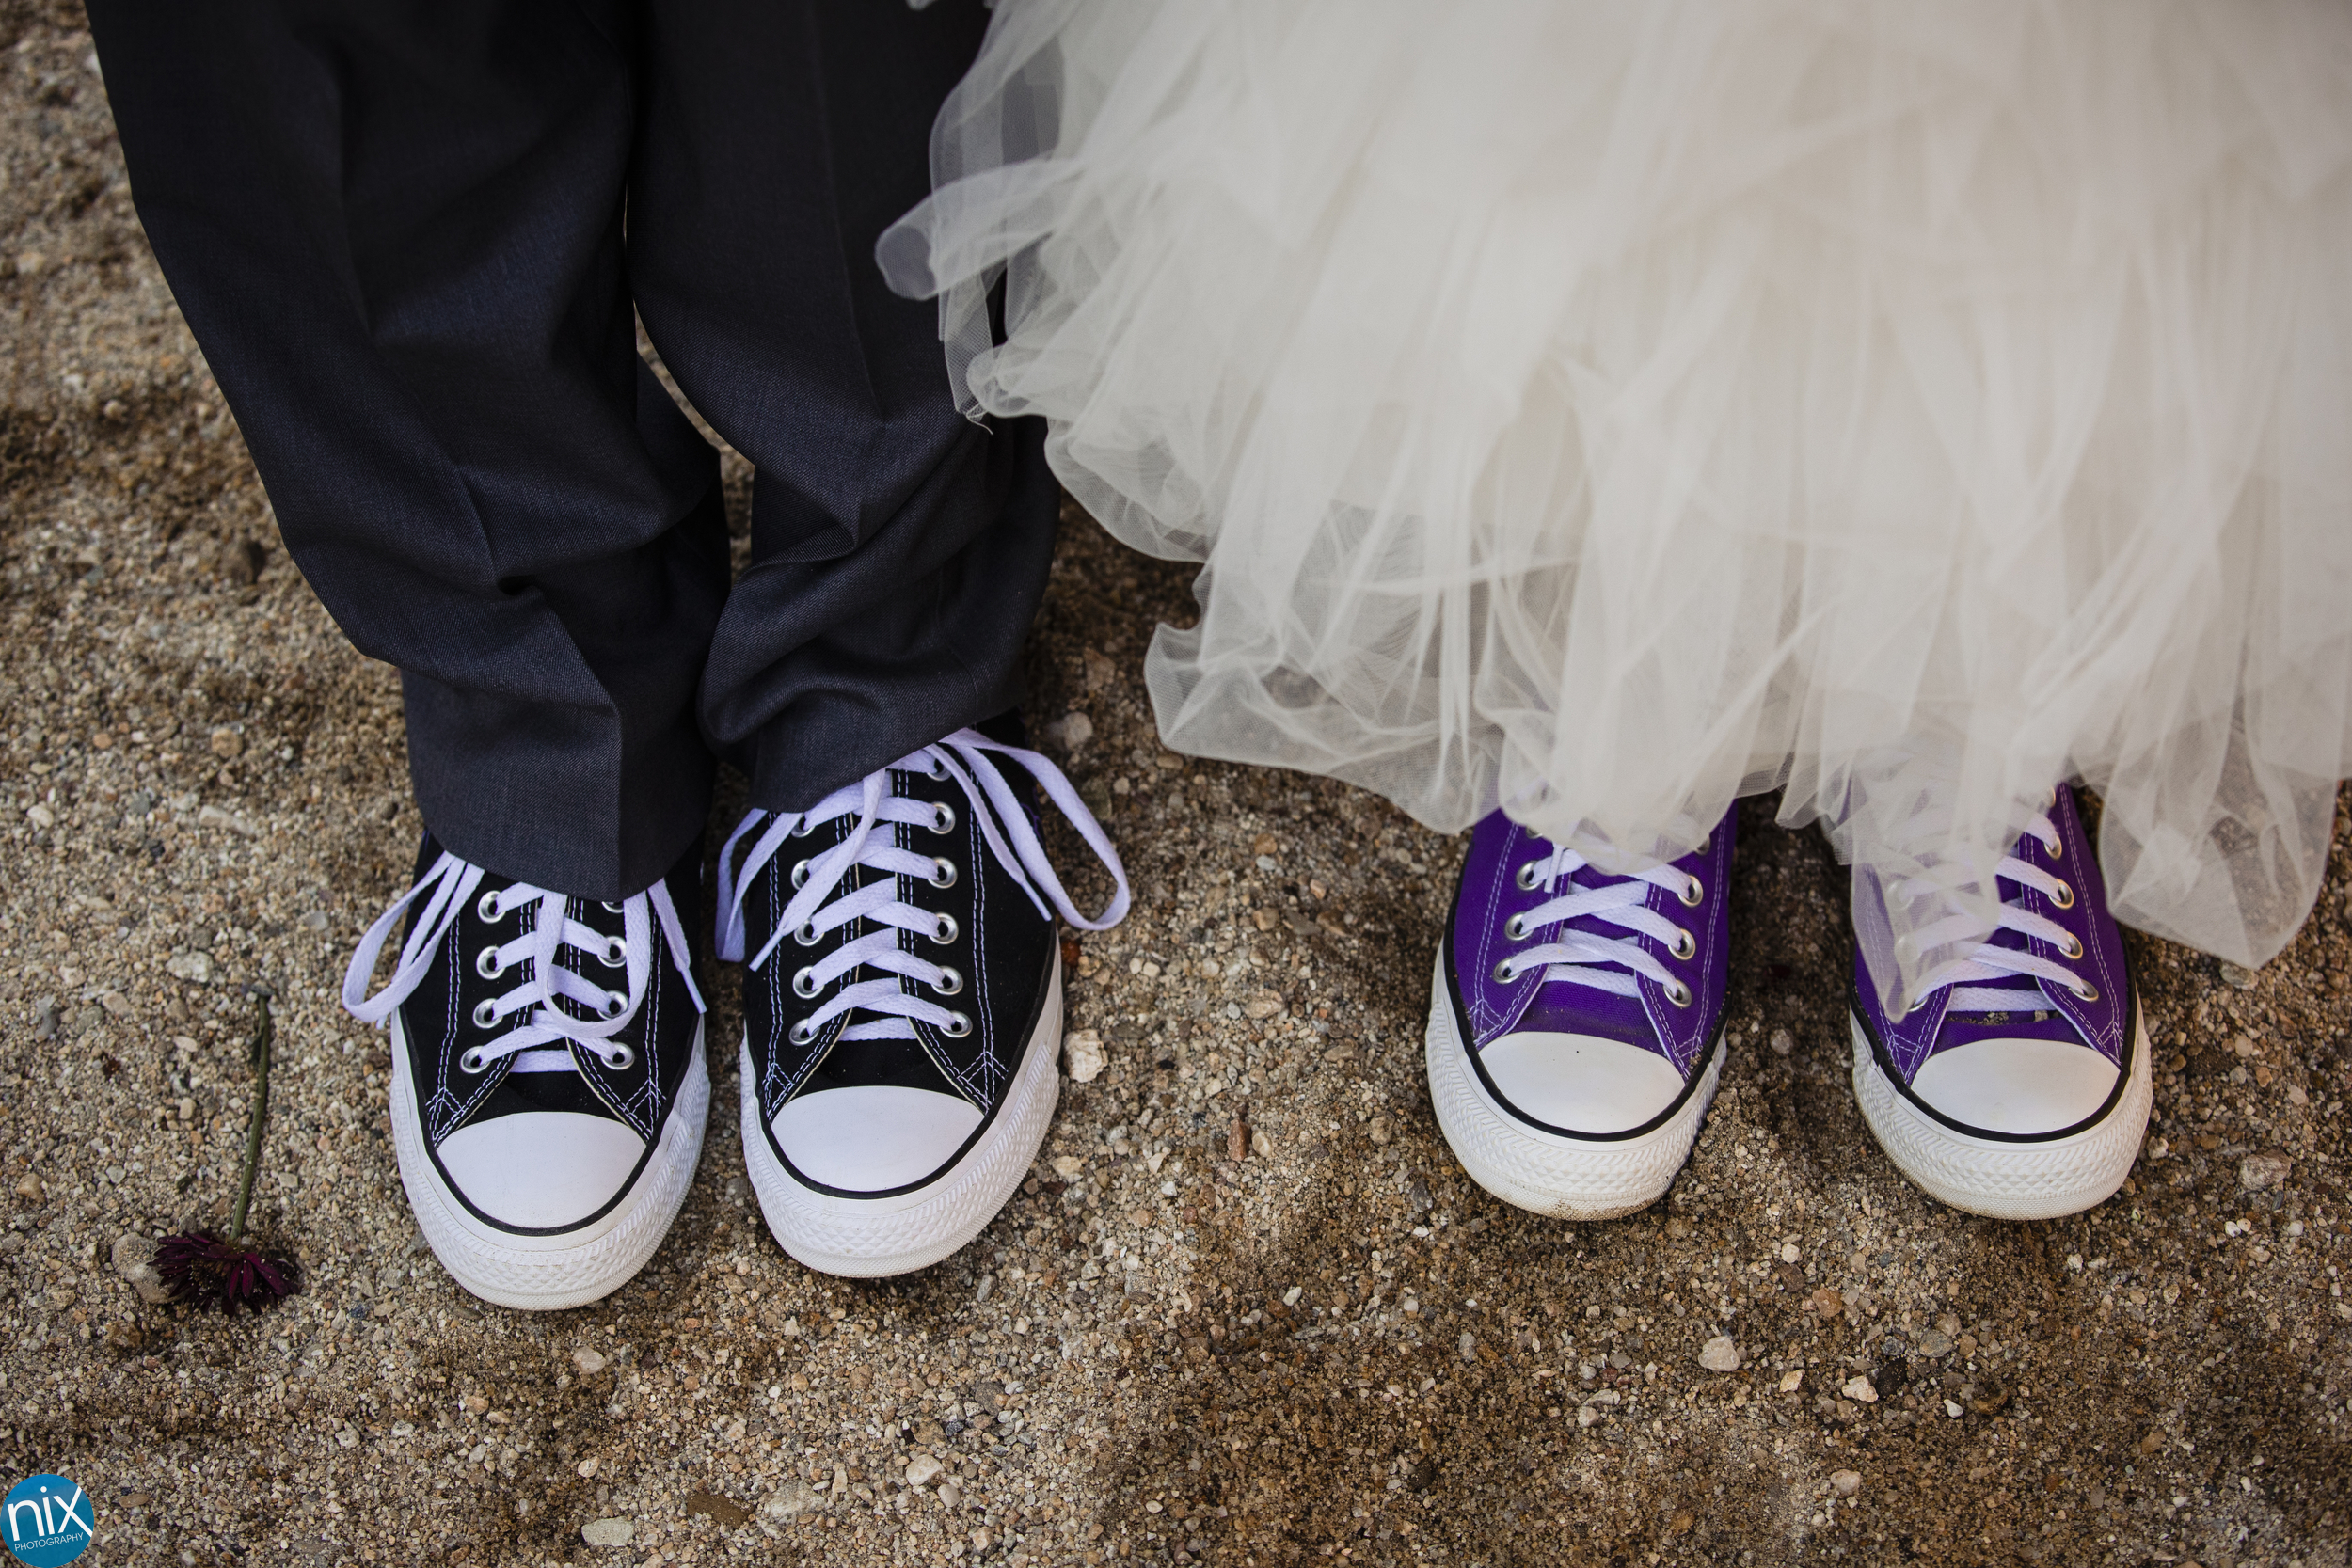 wedding chuck taylors.jpg